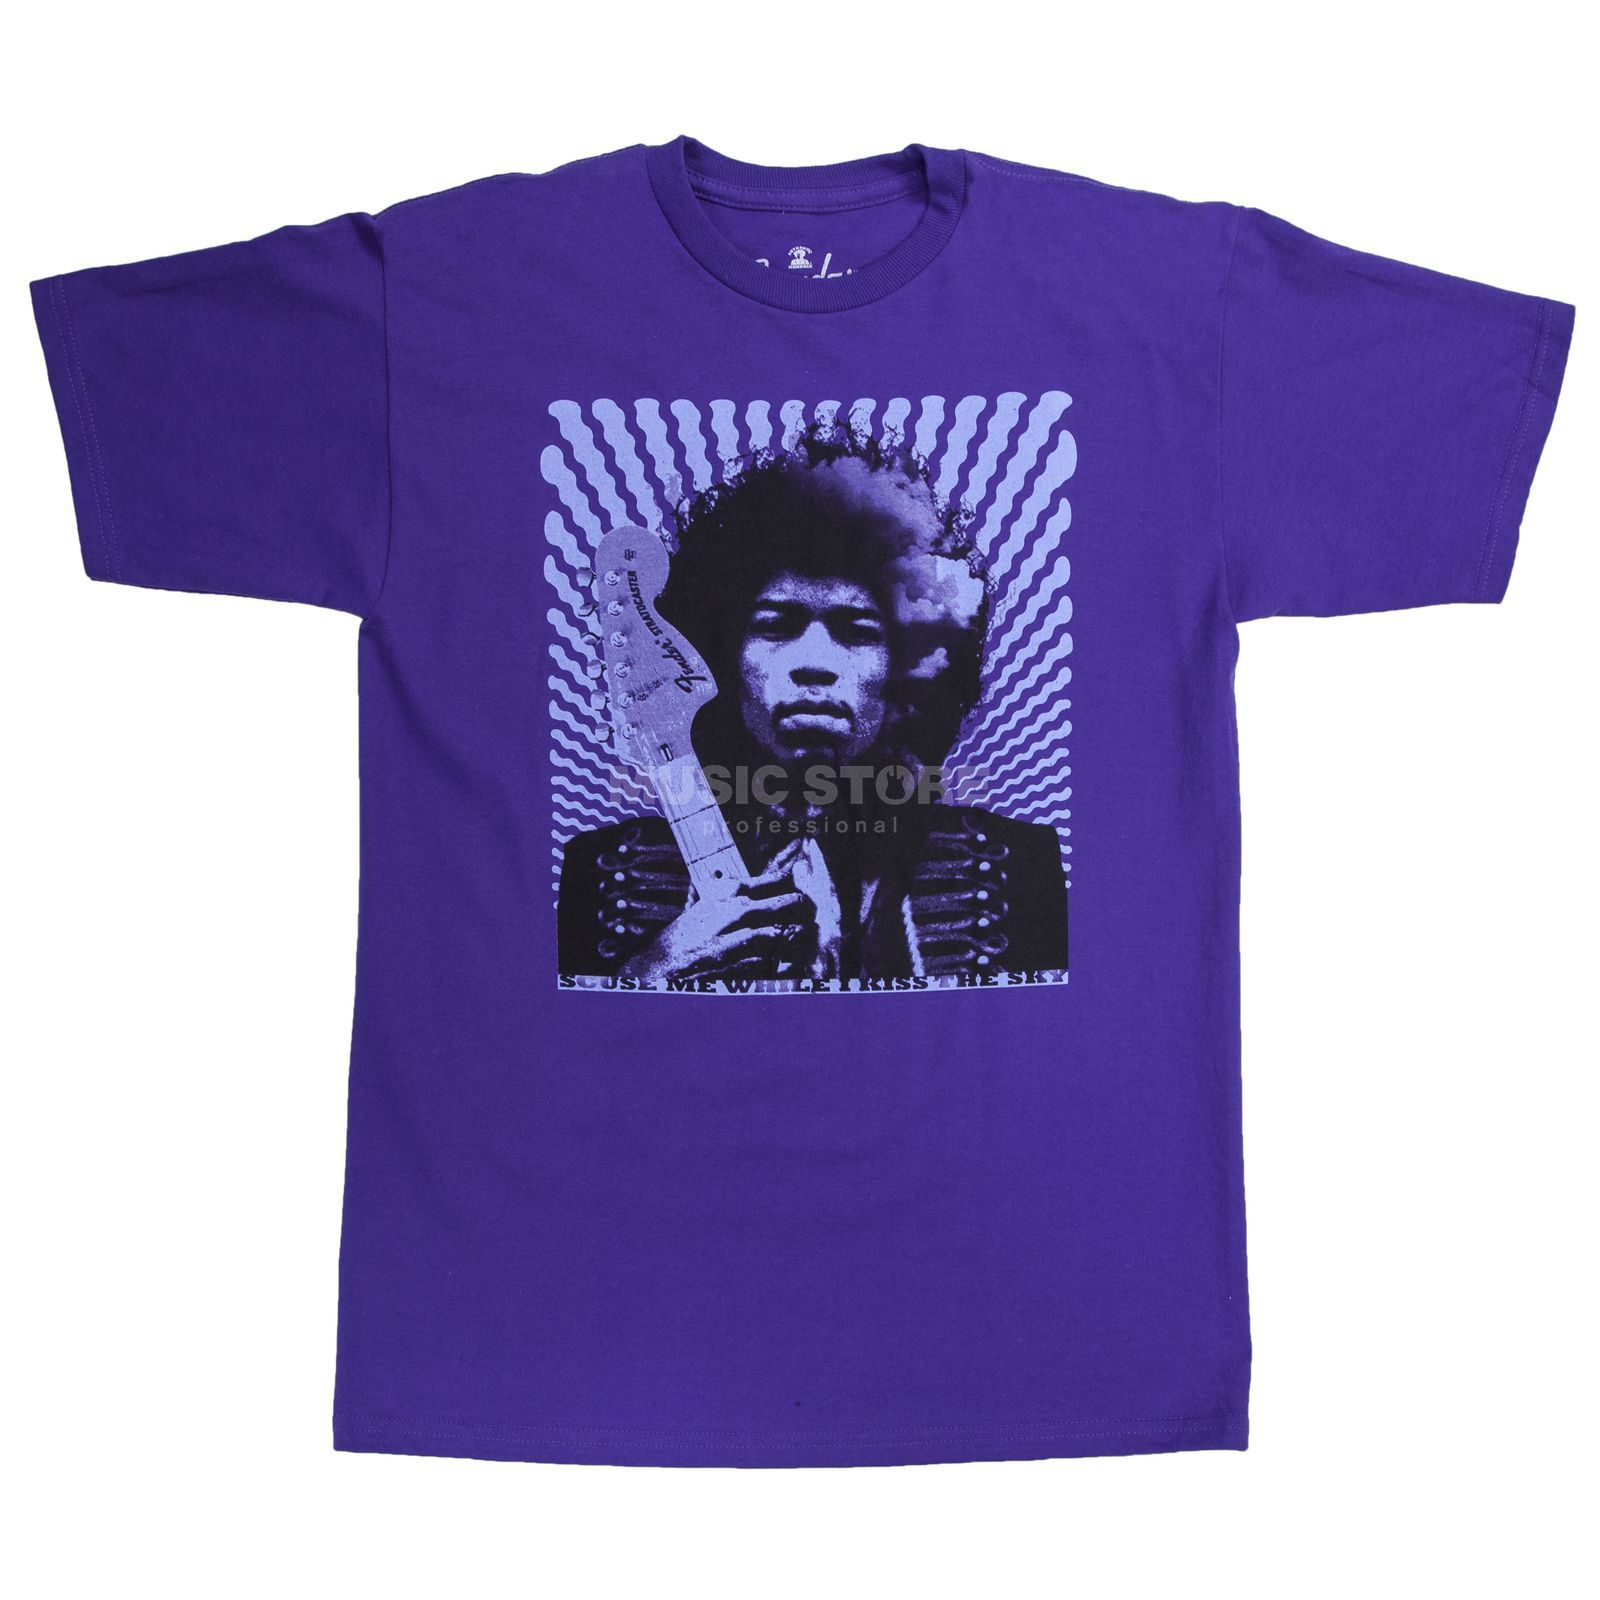 Fender Hendrix Kiss The Sky T-Shirt L Purple Produktbild